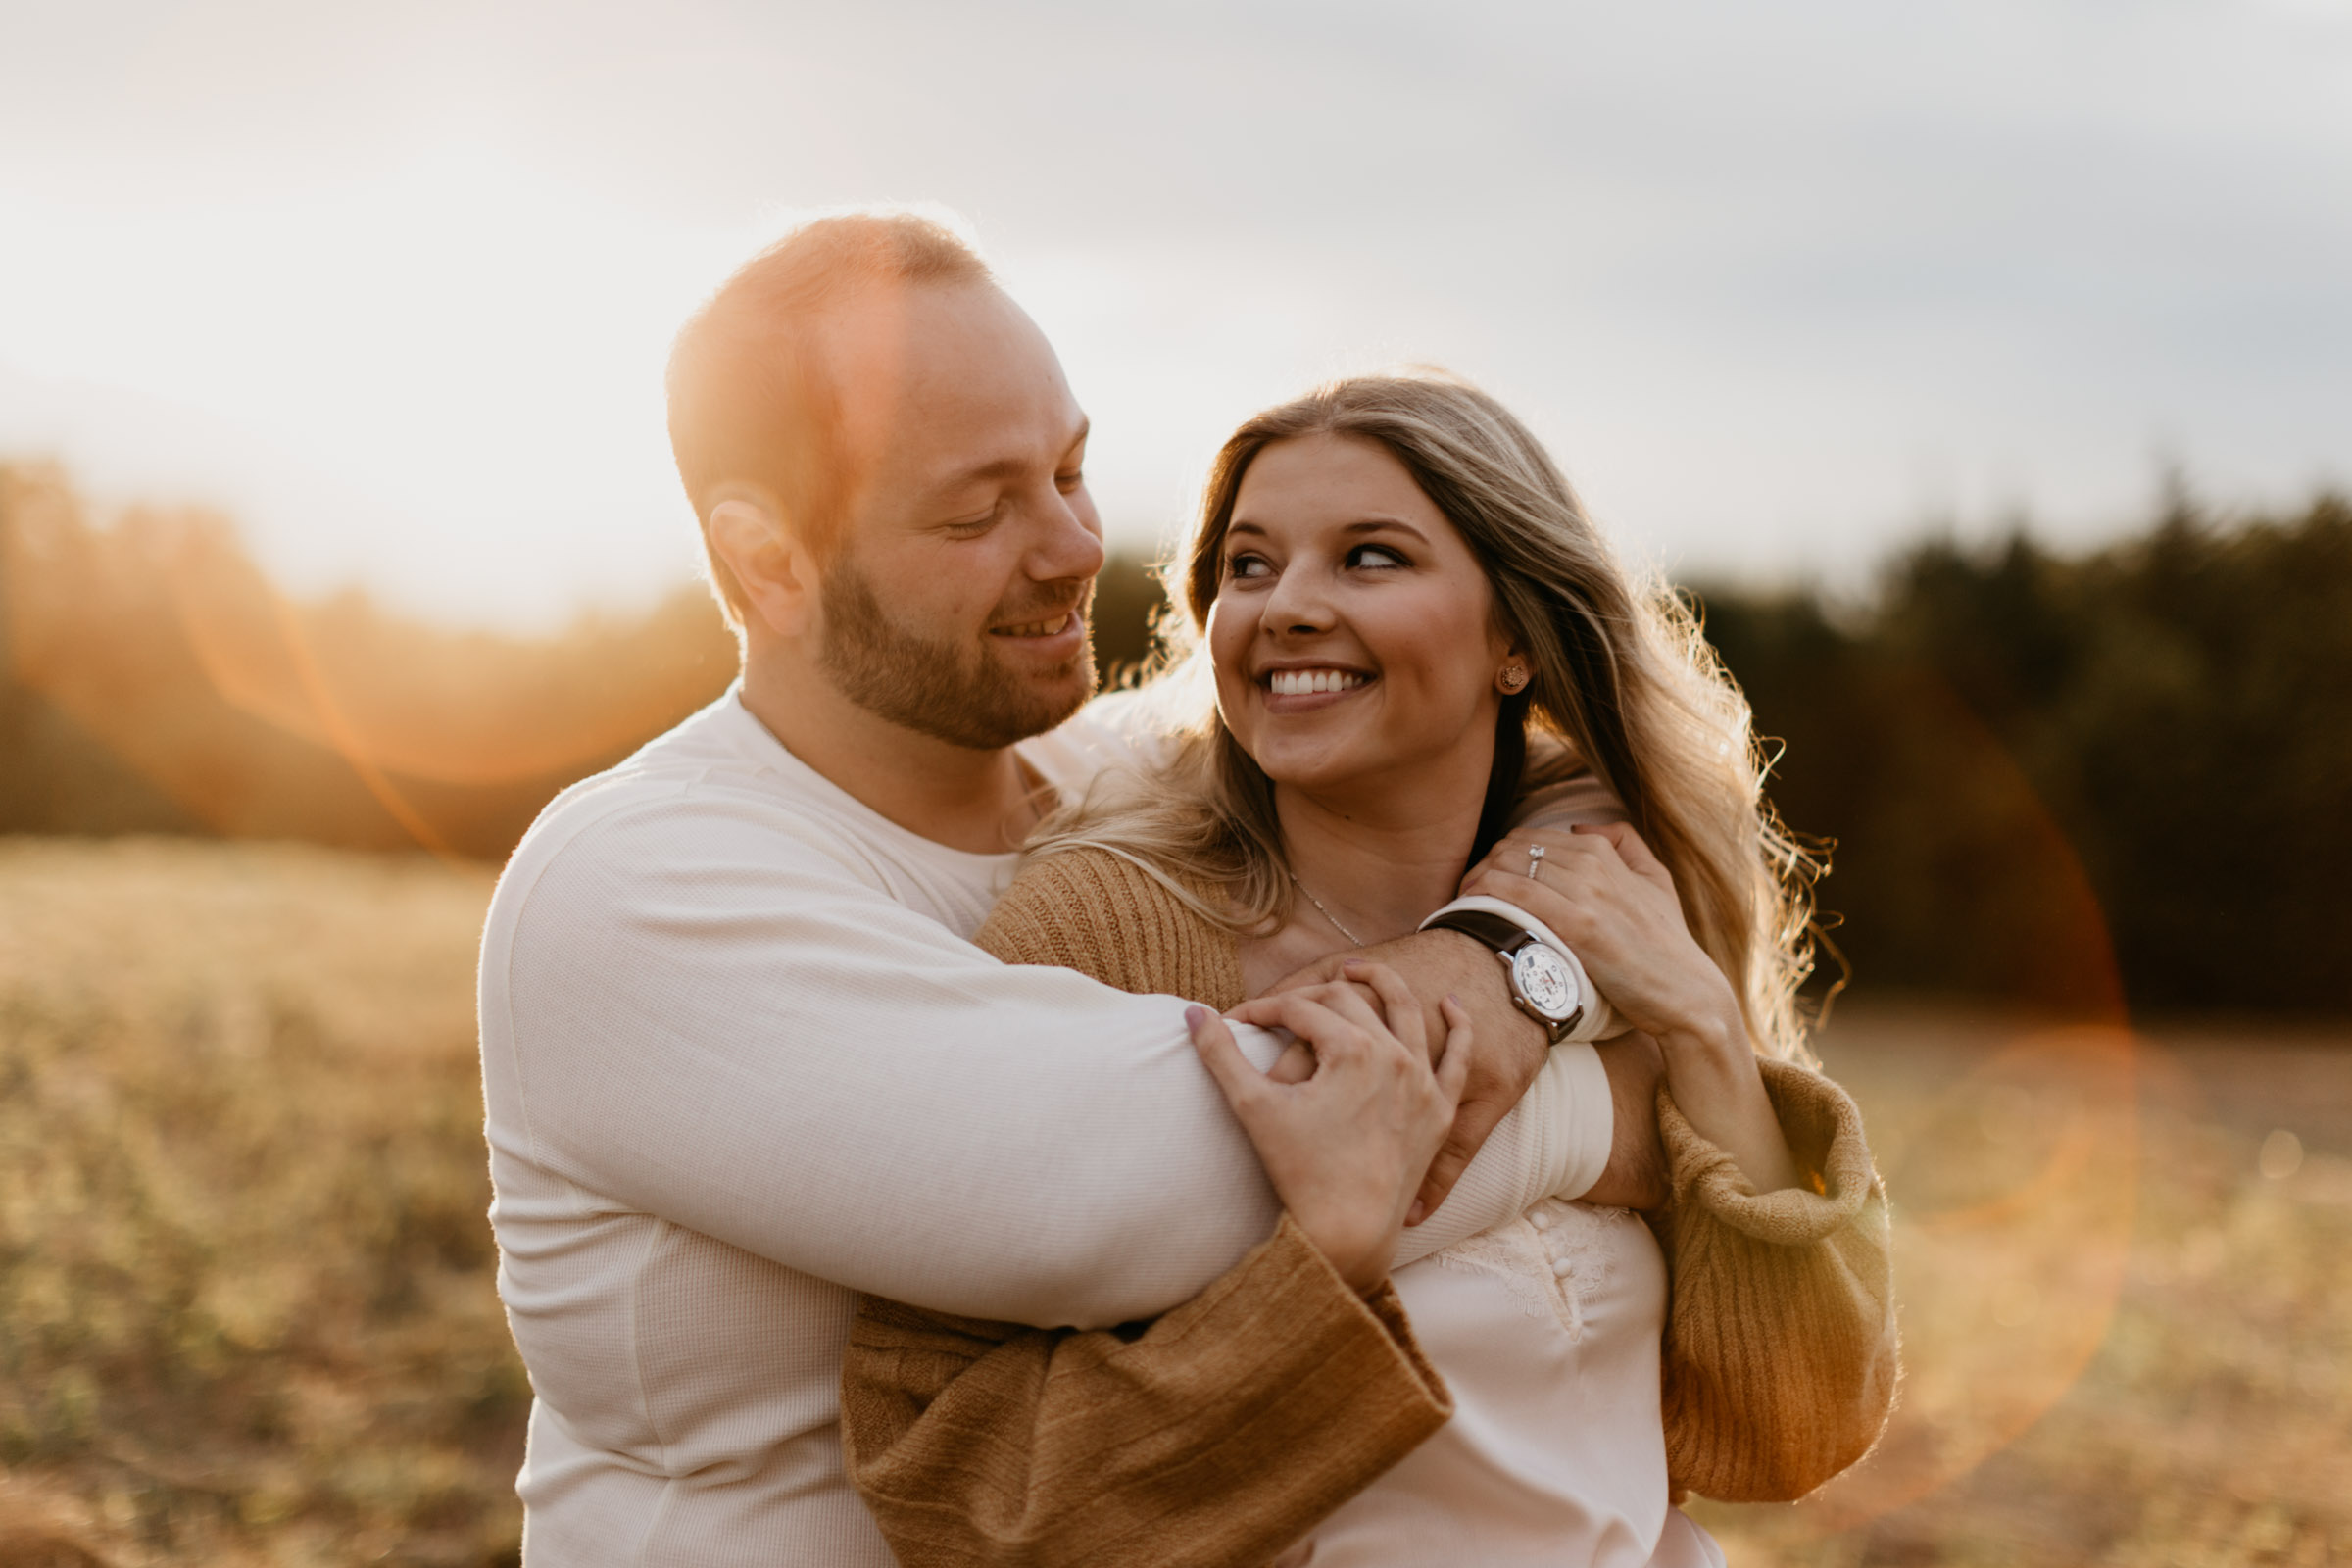 Couple being romantic at golden hour for their engagement session during fall